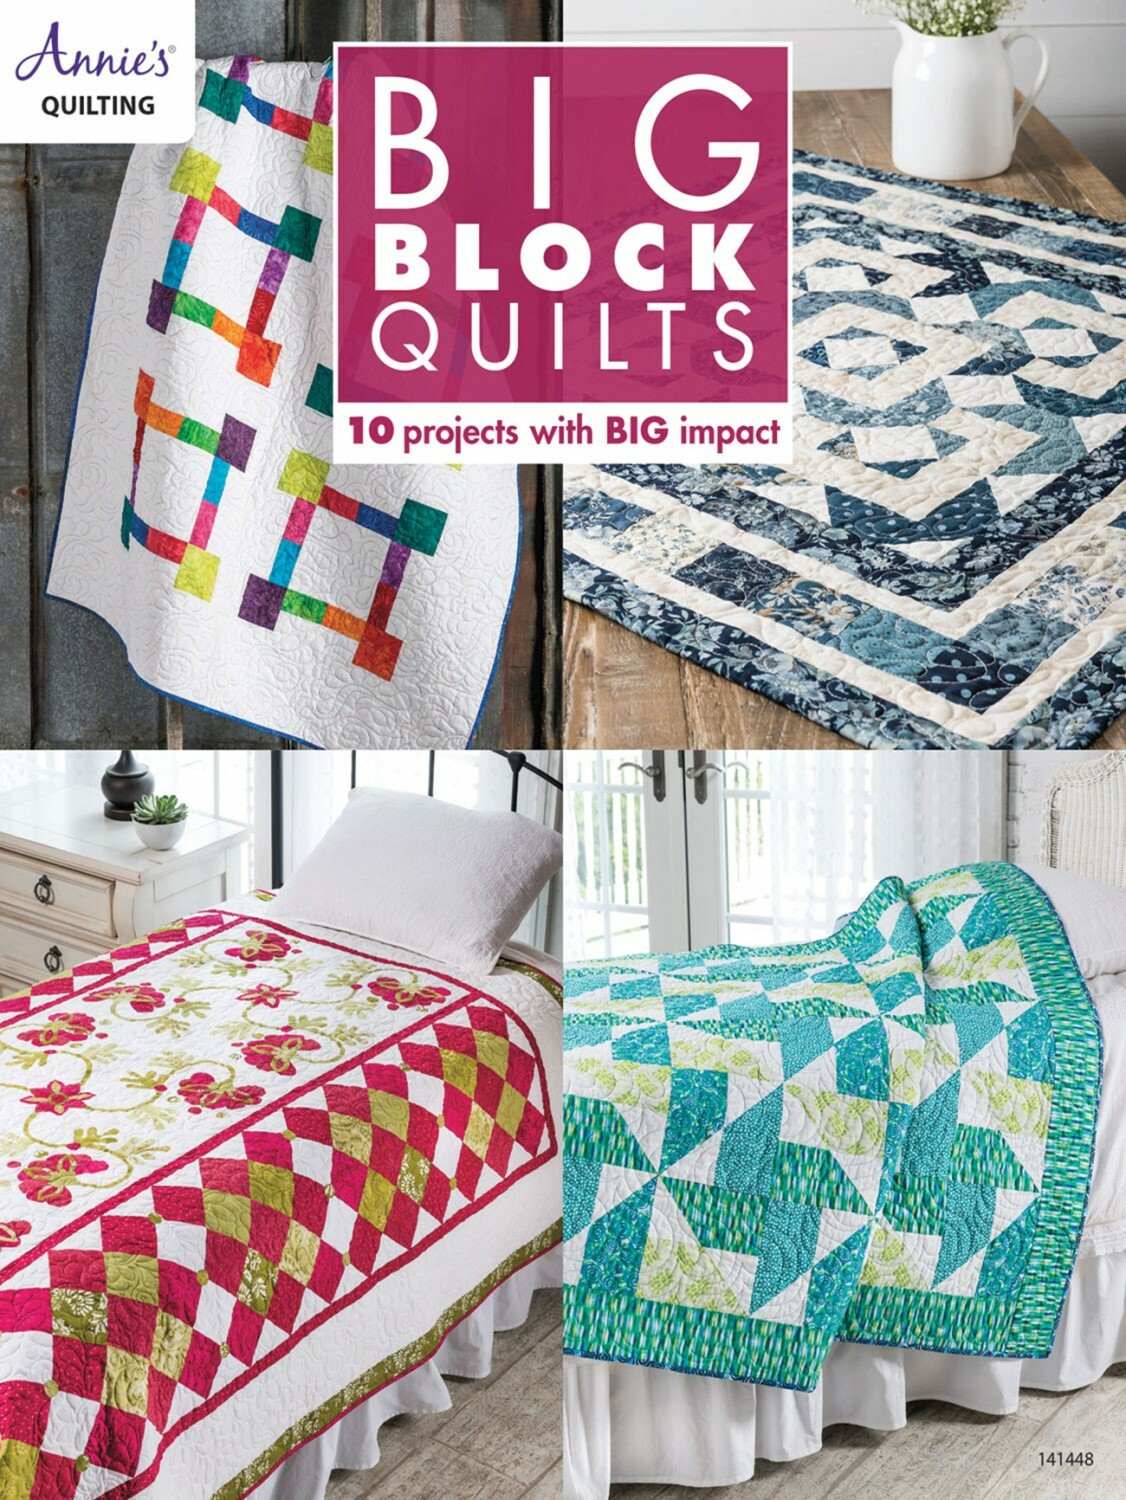 Big Blocks Quilts Book 56430